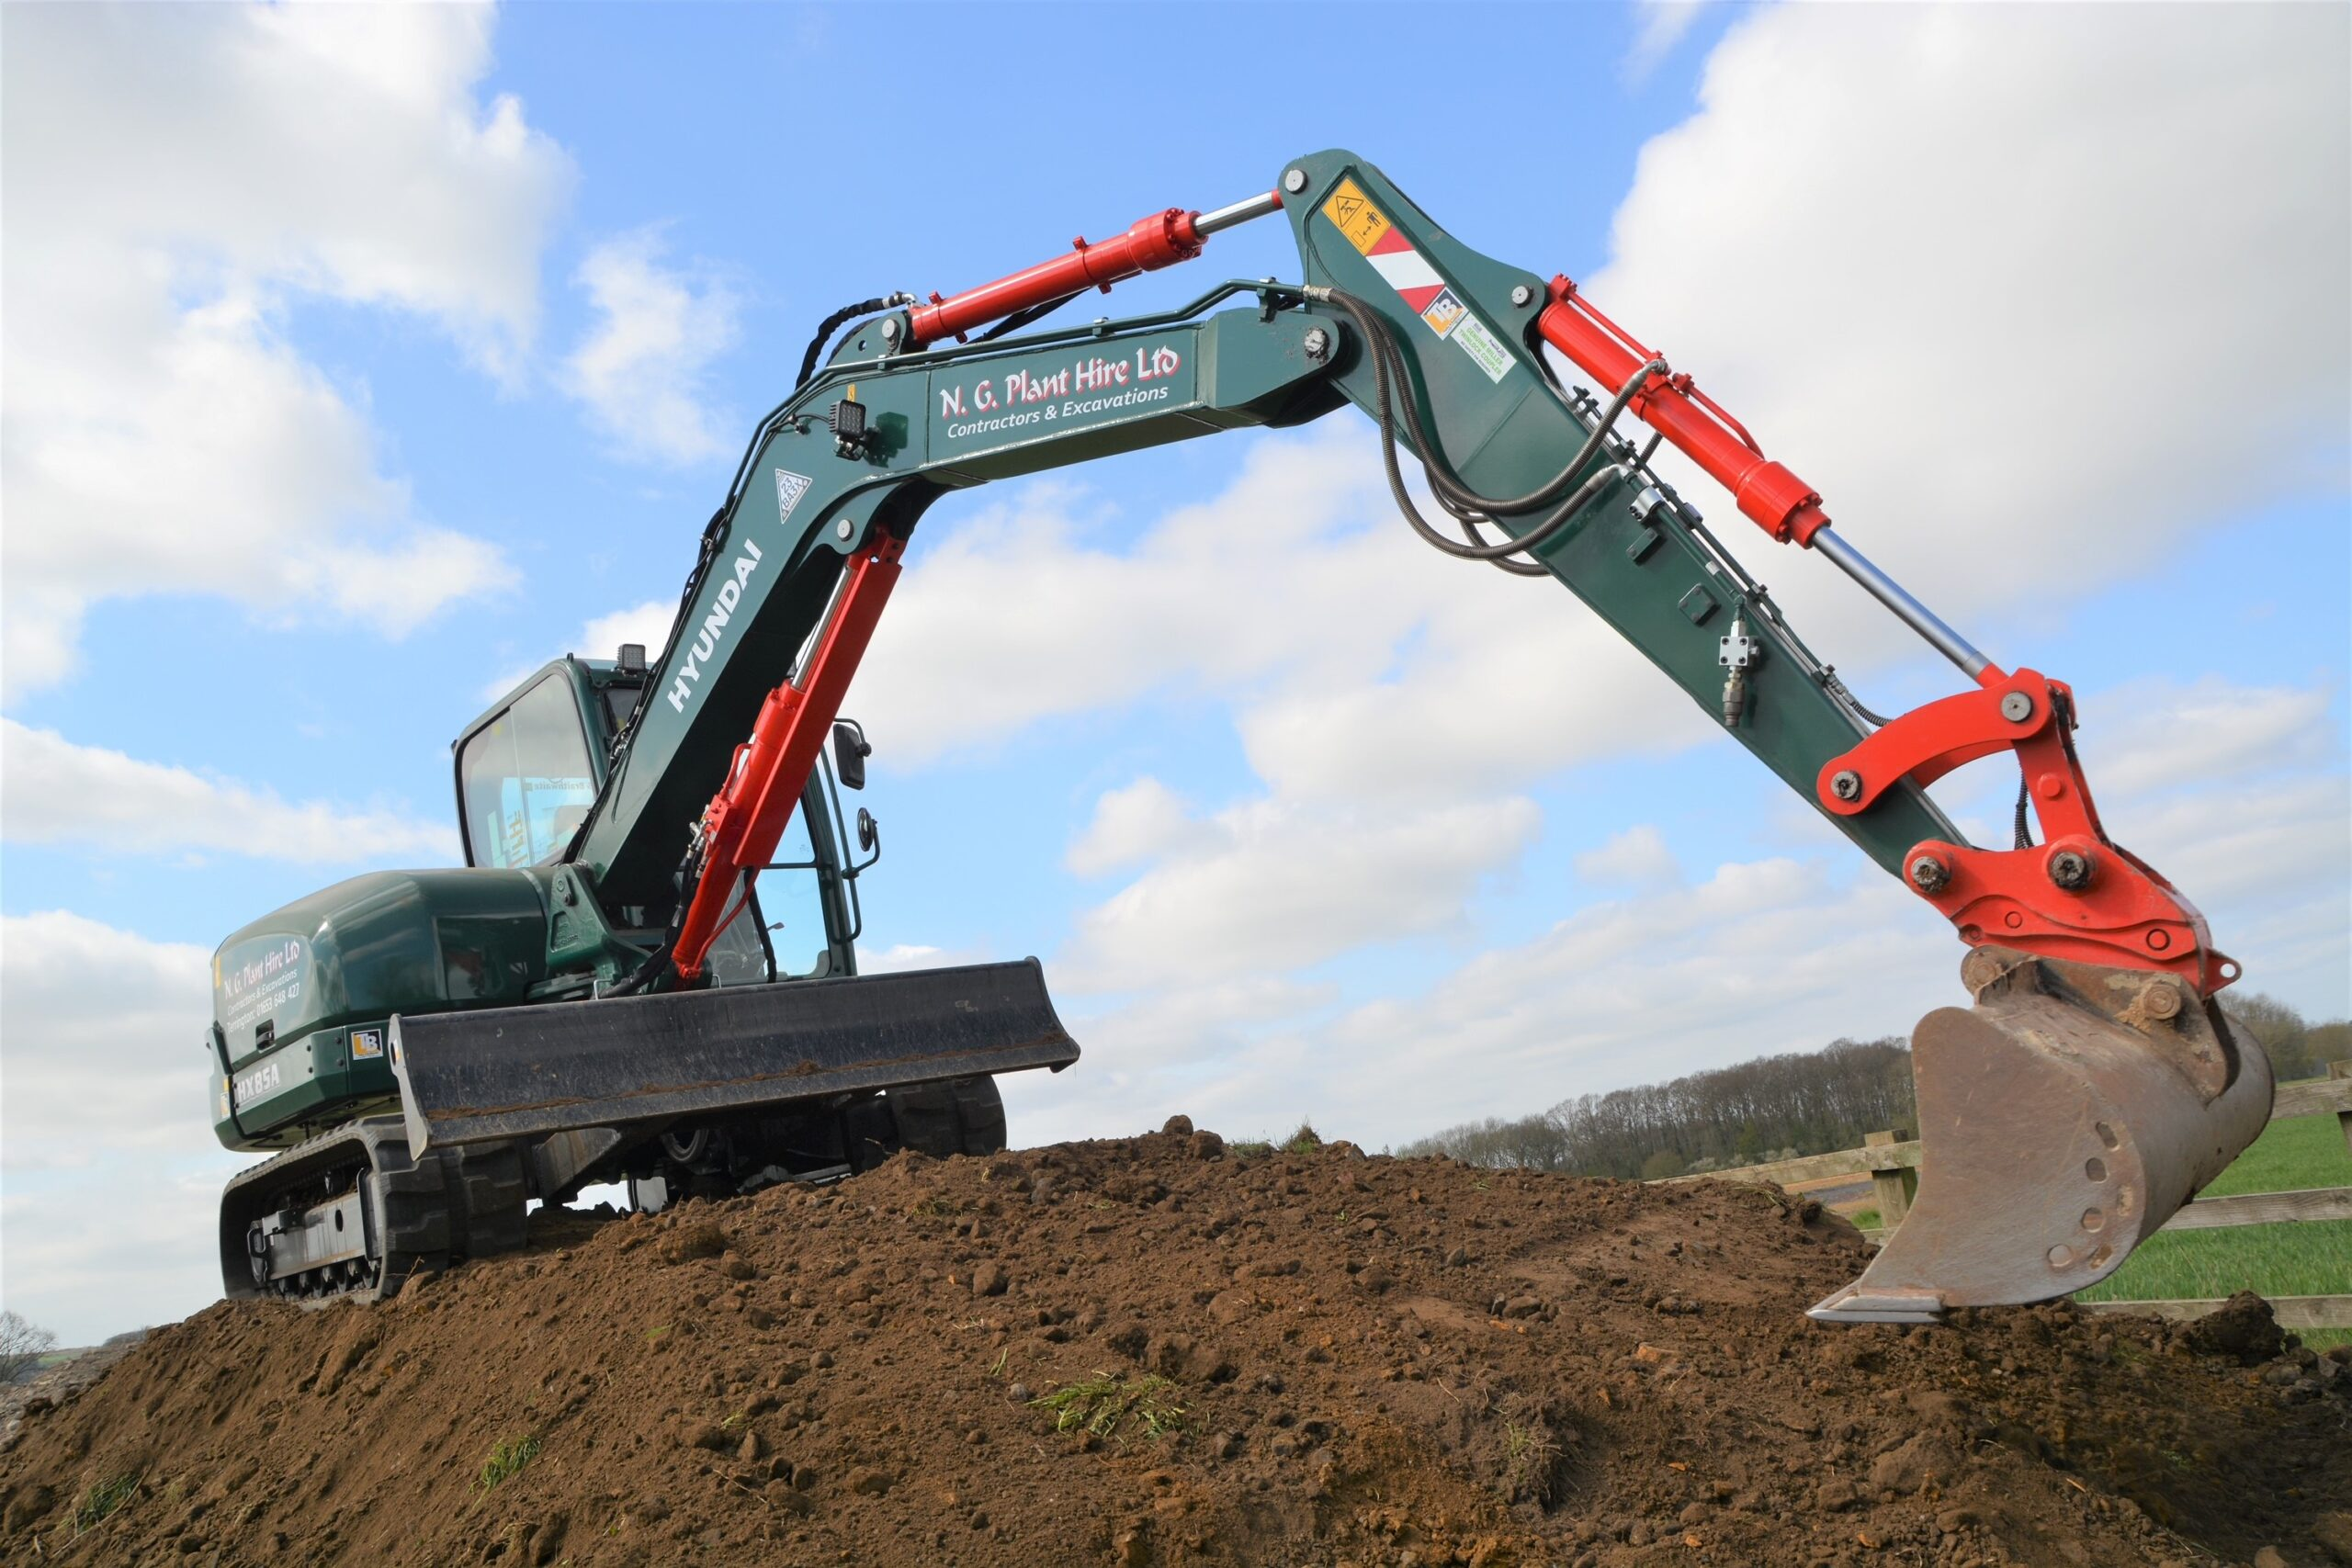 N G Plant Hire takes delivery of first Hyundai HX85A in the UK